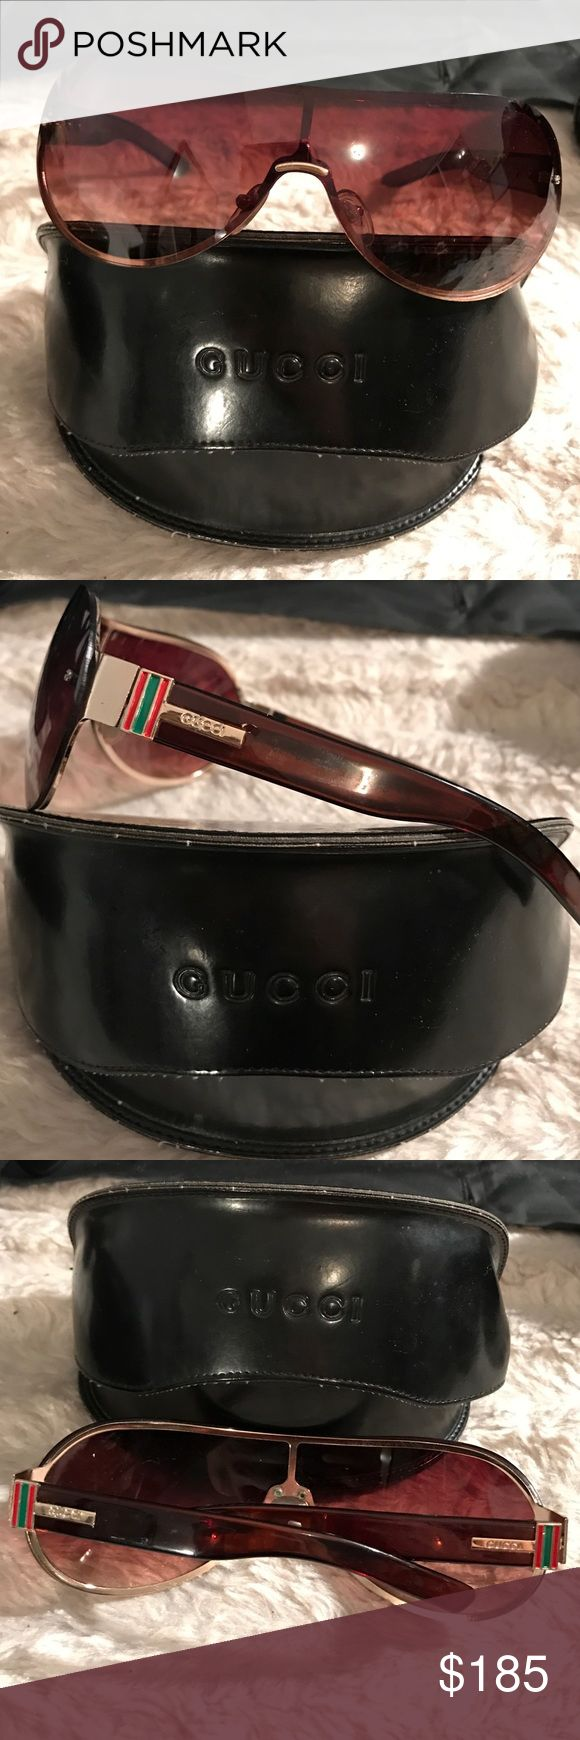 Authentic Gucci sunglasses and case Like new condition authentic pair of Gucci sunglasses with case. No scratches two lenses or your pieces. Brown frames with tortoise color your pieces. Trade value is higher Gucci Accessories Sunglasses